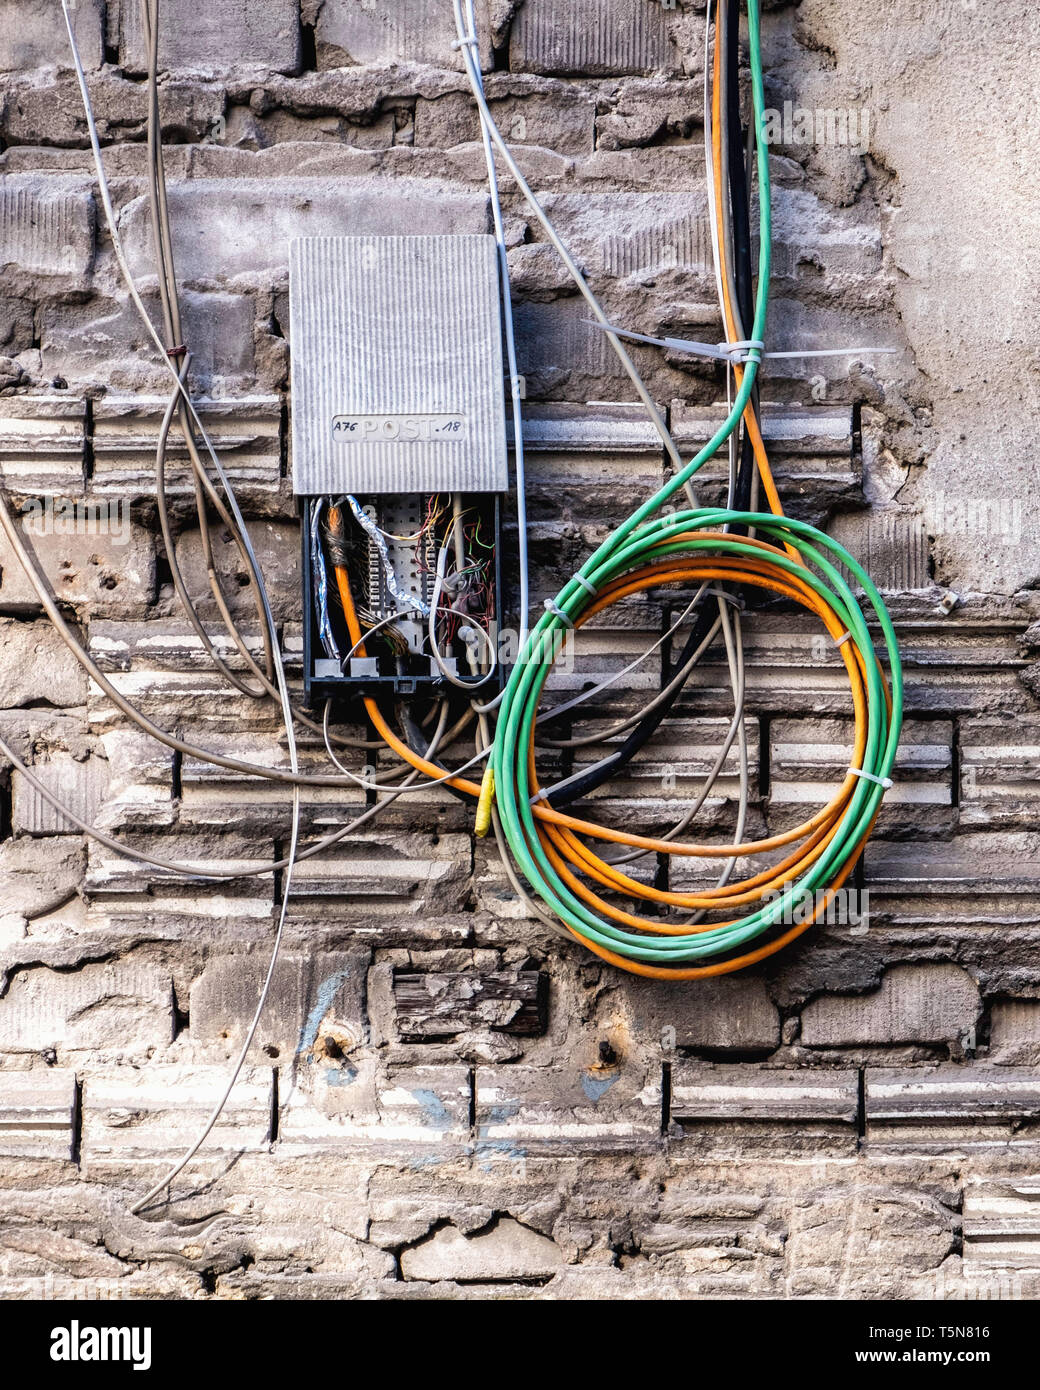 Wedding, Berlin.Electric wiring in Inner courtyard of dilapidated old industrial building next to Panke river at Gerichtstrasse 23.Building detail. Stock Photo